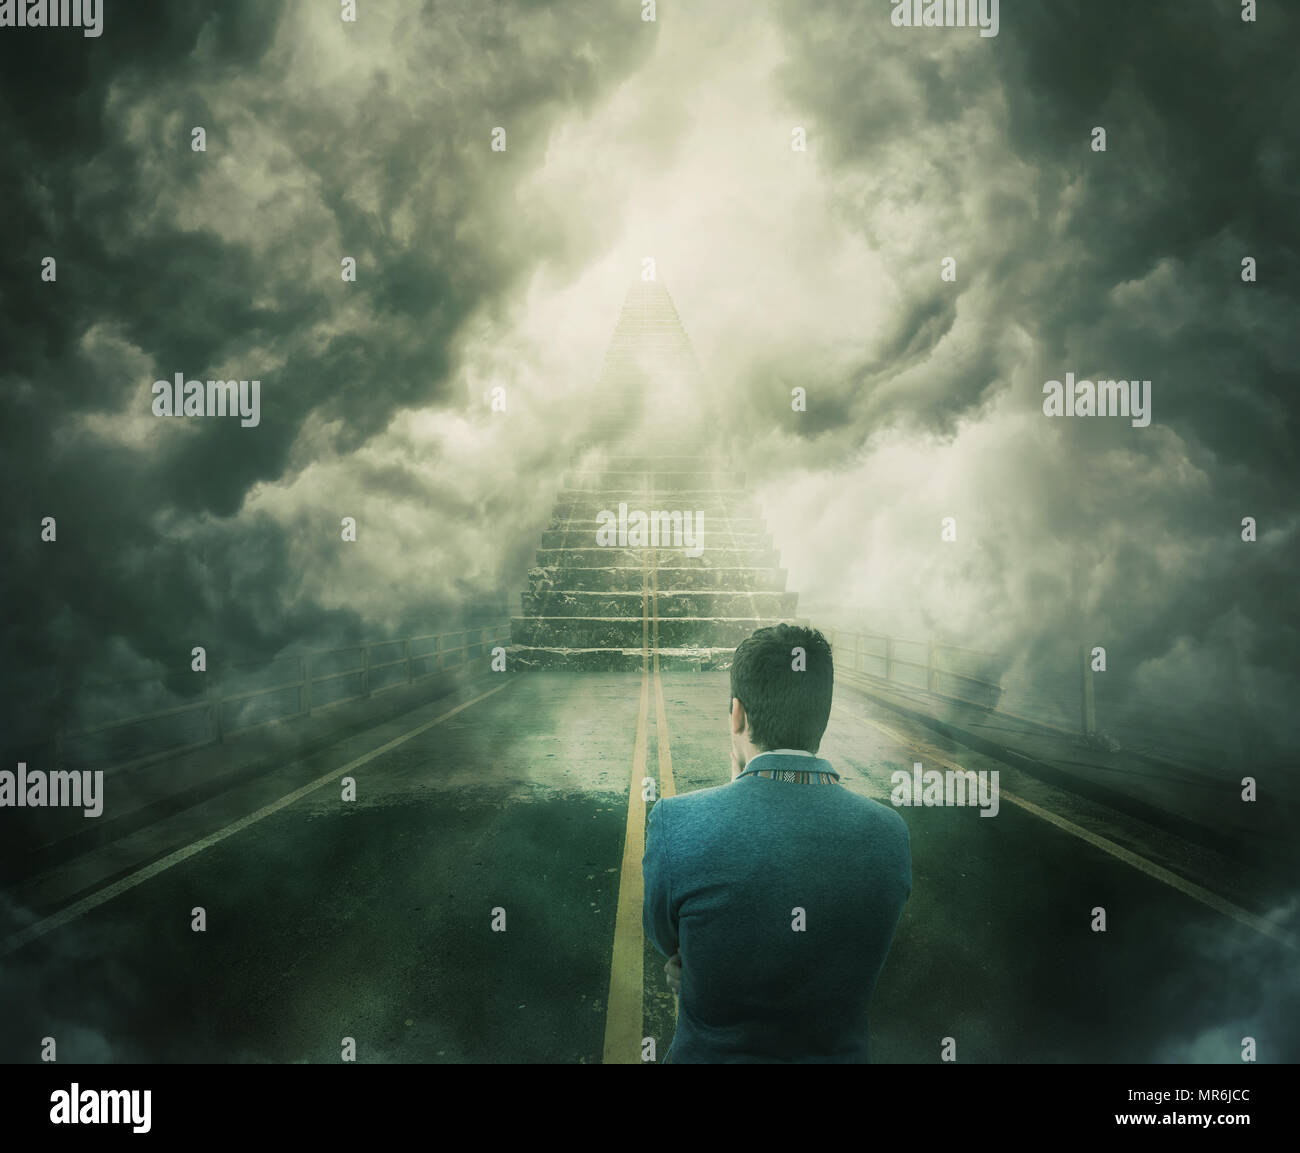 Mystic view as a man stand on the road transforming into a stairway going up to unknown heaven. Difficult decision, concept of the important choice. O - Stock Image